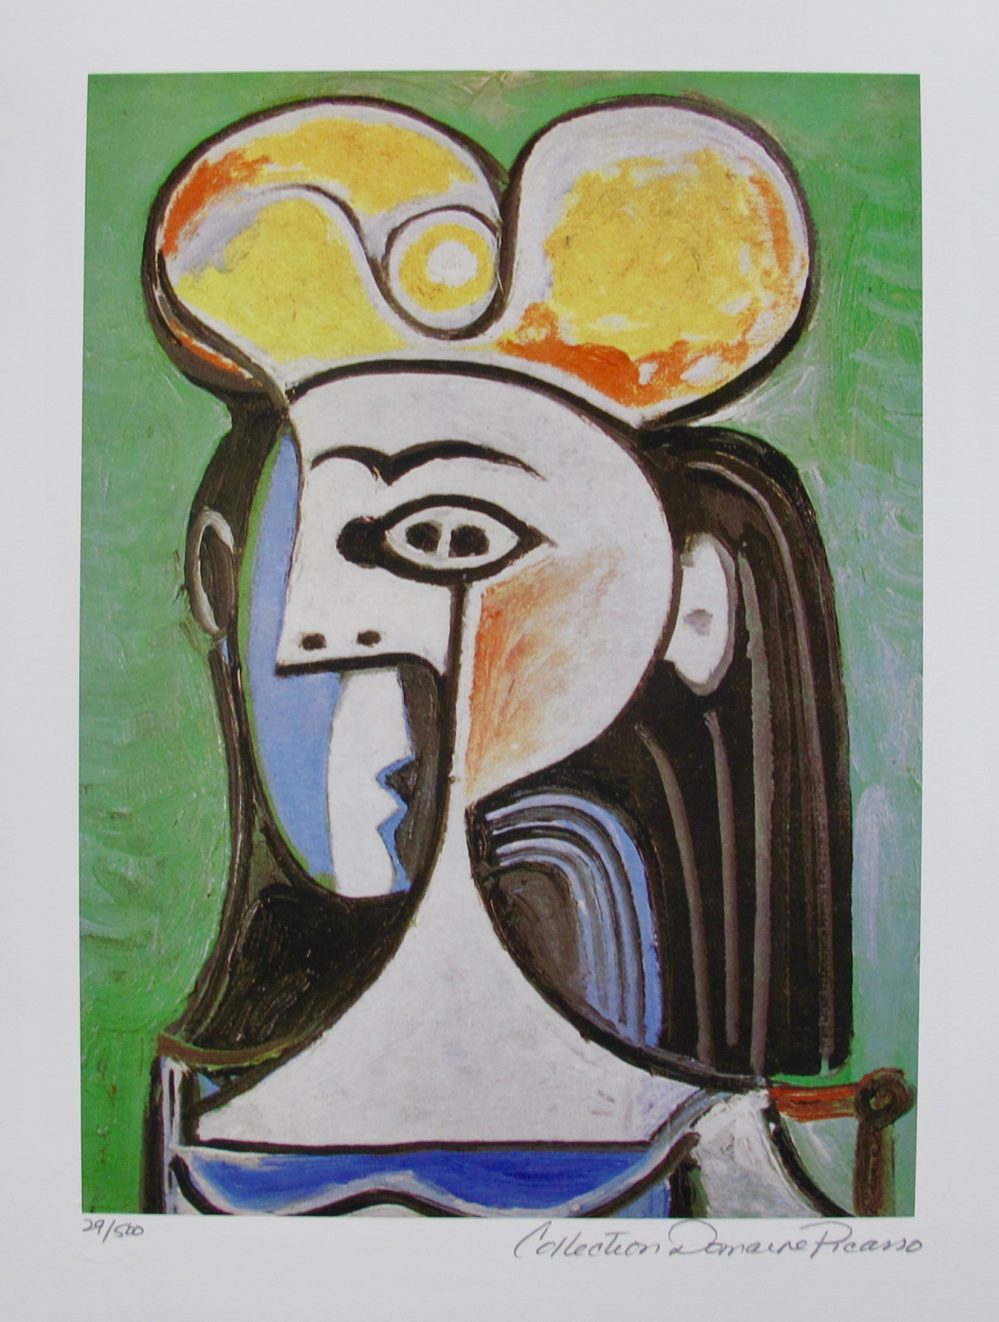 Pablo Picasso GIRL WITH BLACK HAIR Estate Signed Limited Edition Small Giclee